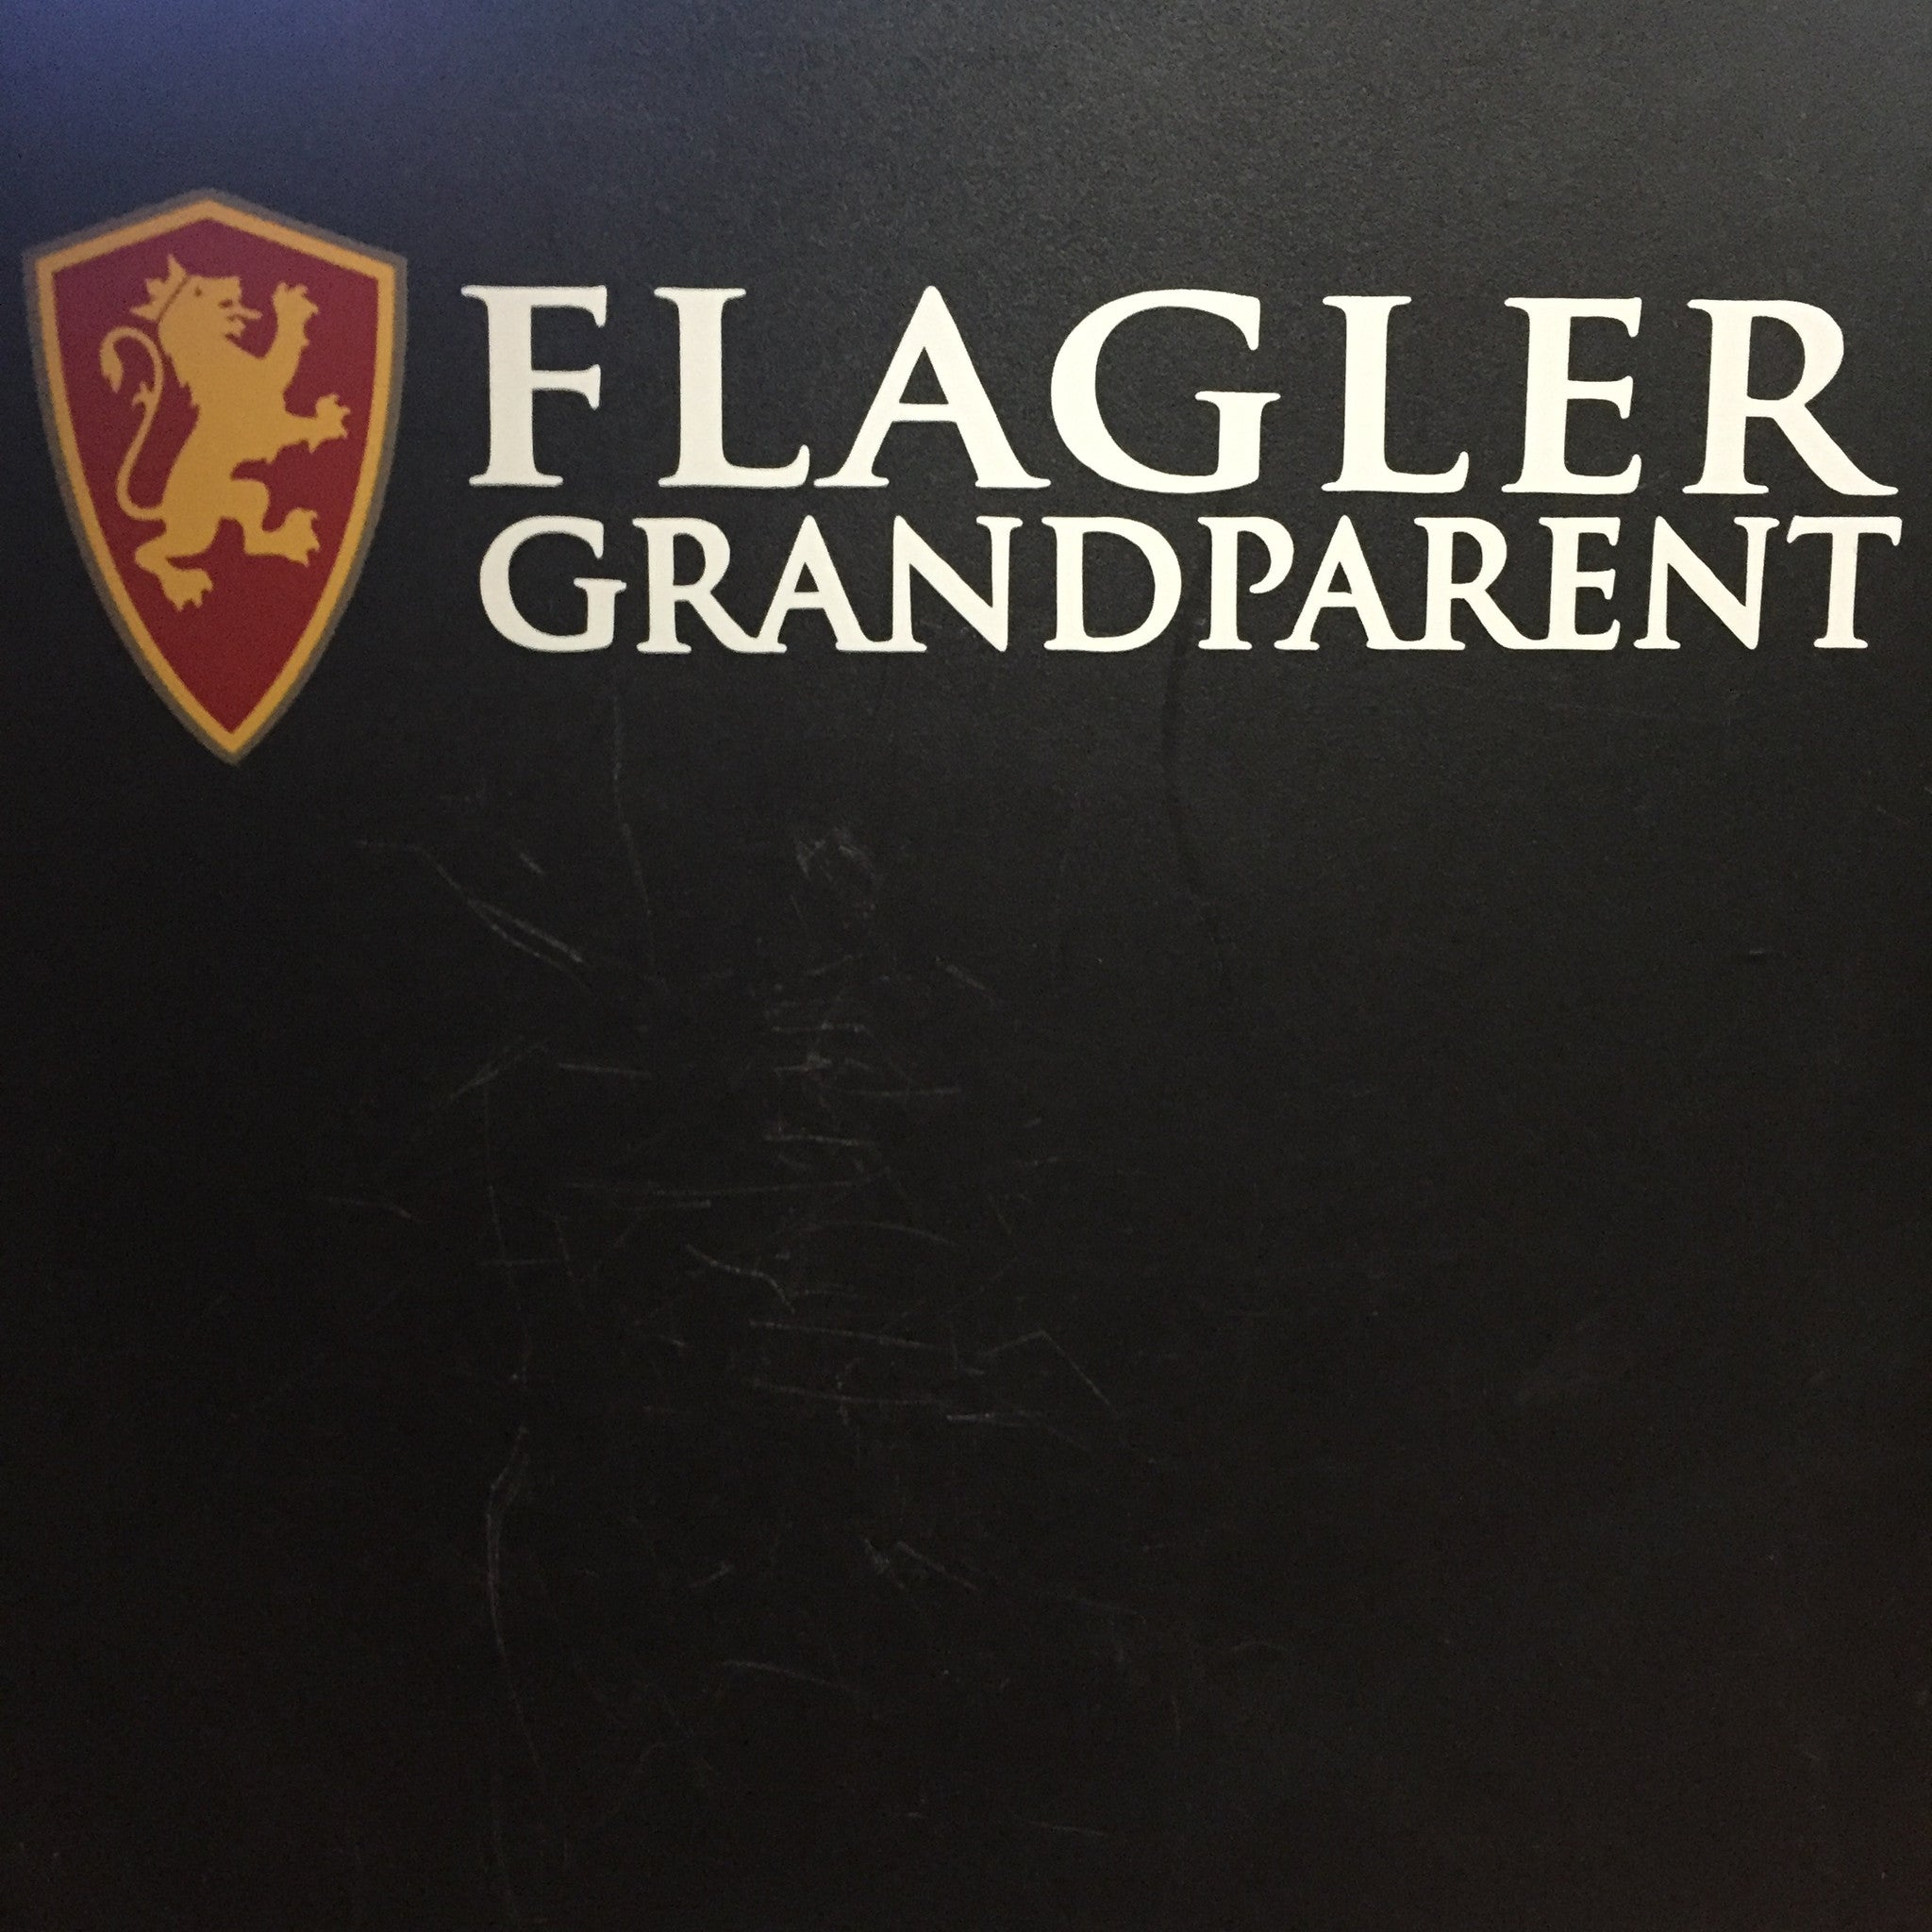 full color shield and Flagler grandparent in white decal